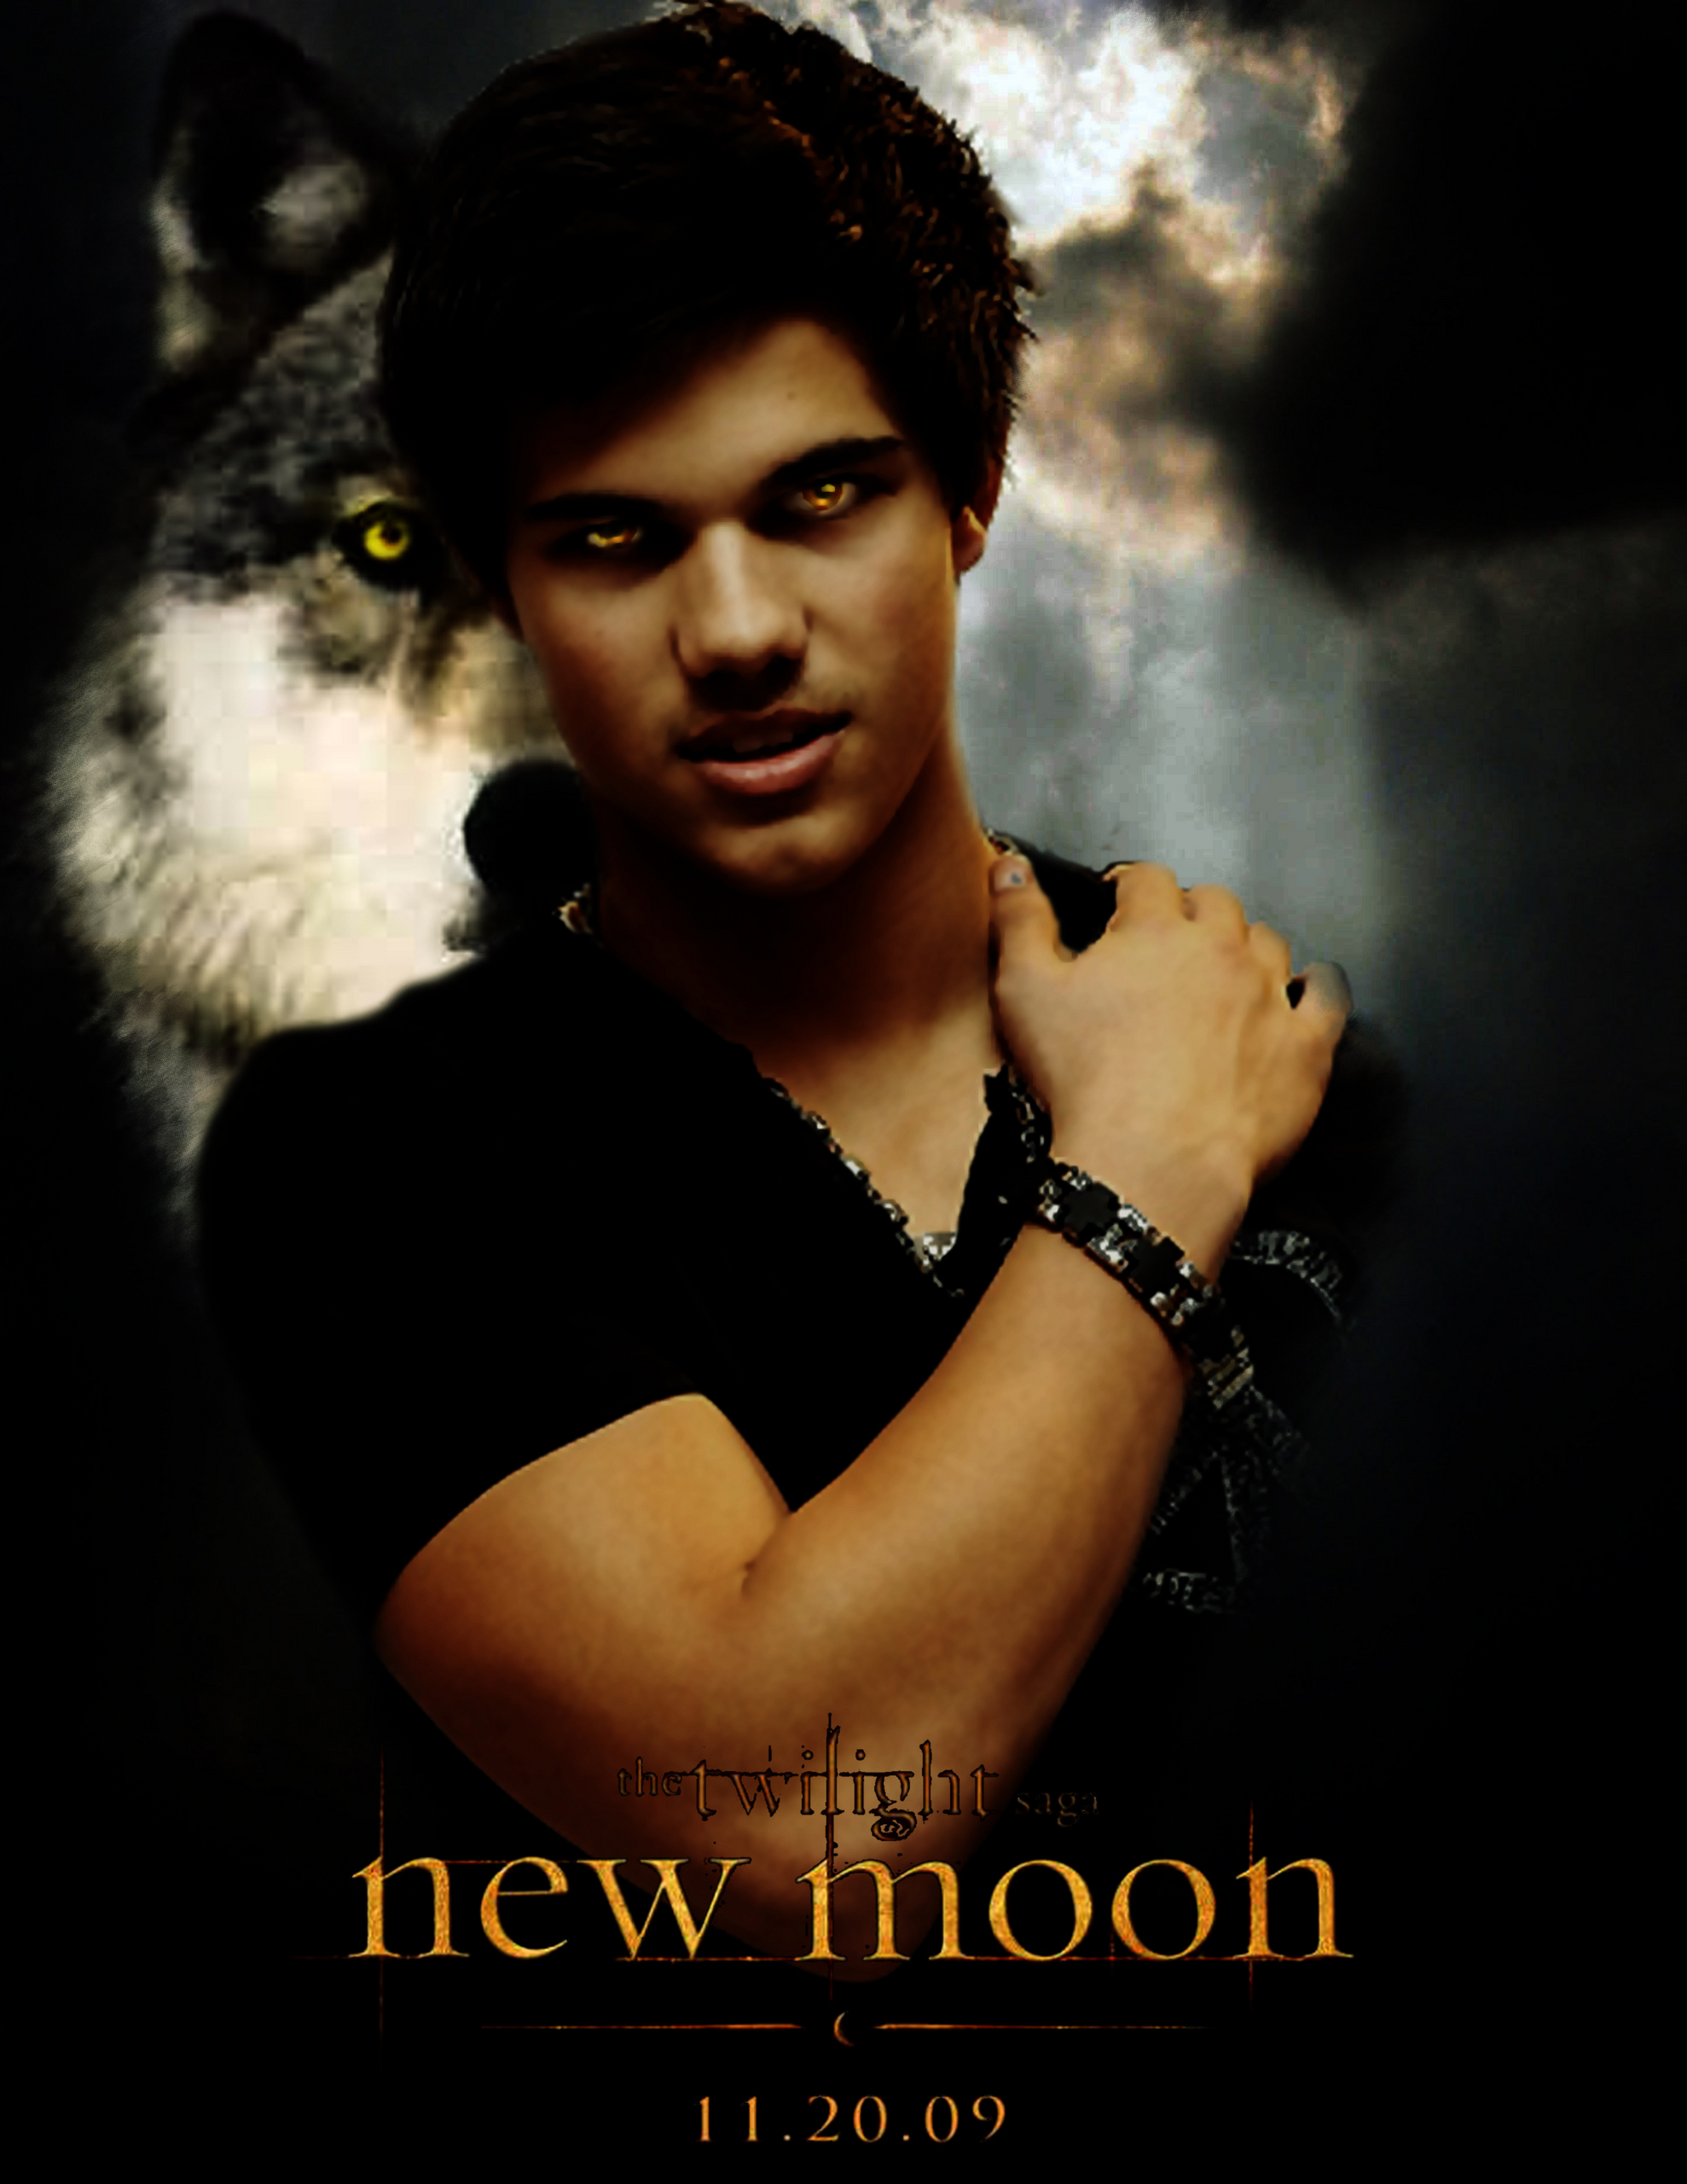 jacob chatrooms Read twilight chat-room 1 from the story twilight saga chatrooms by love_him_forever with 4,537 reads moon, newmoon jacob 1901harmlessvamp has logged on.